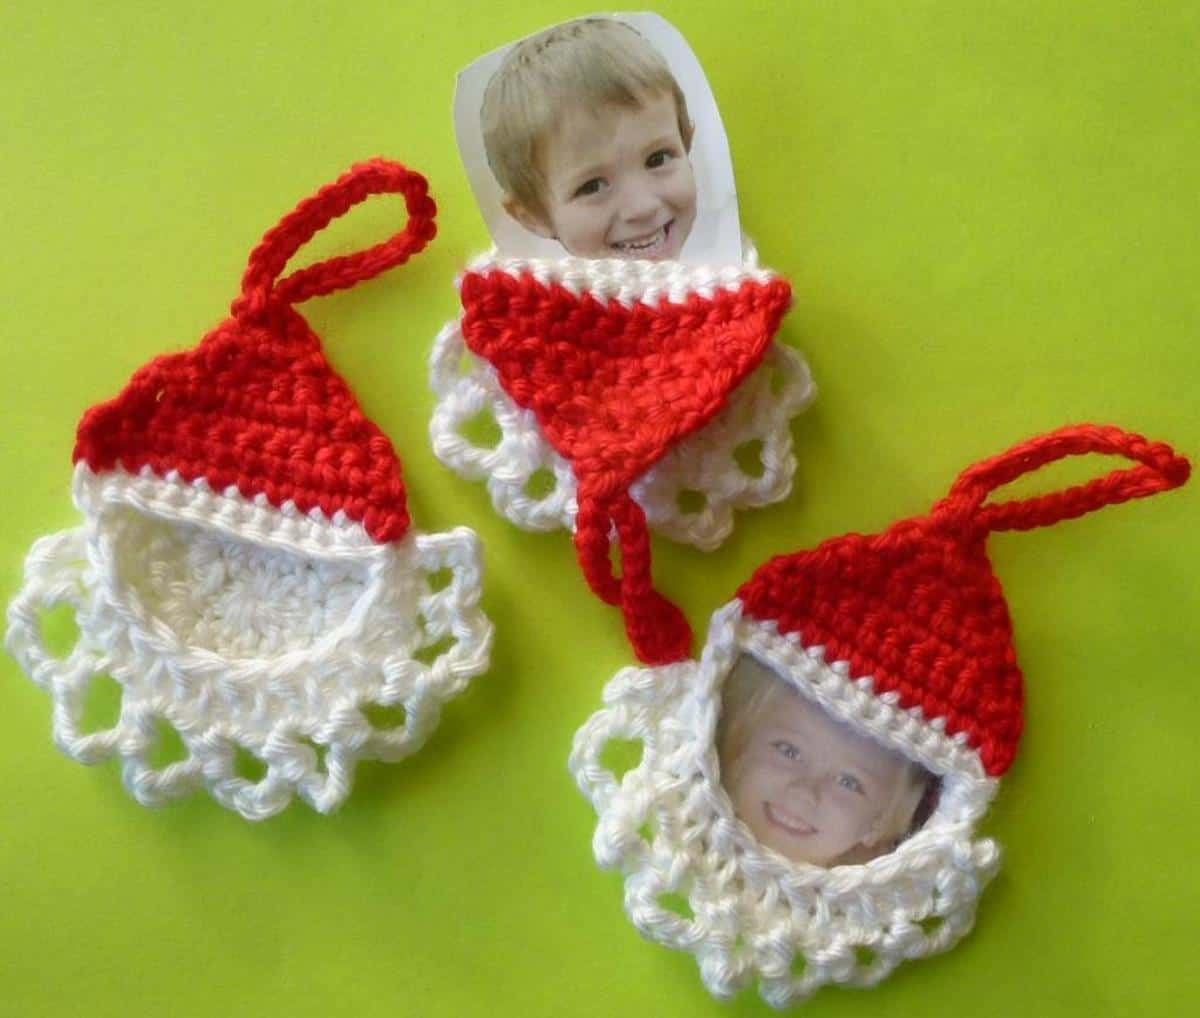 Crochet ornament Awesome Crochet Christmas ornaments Free Patterns Of Unique 43 Images Crochet ornament